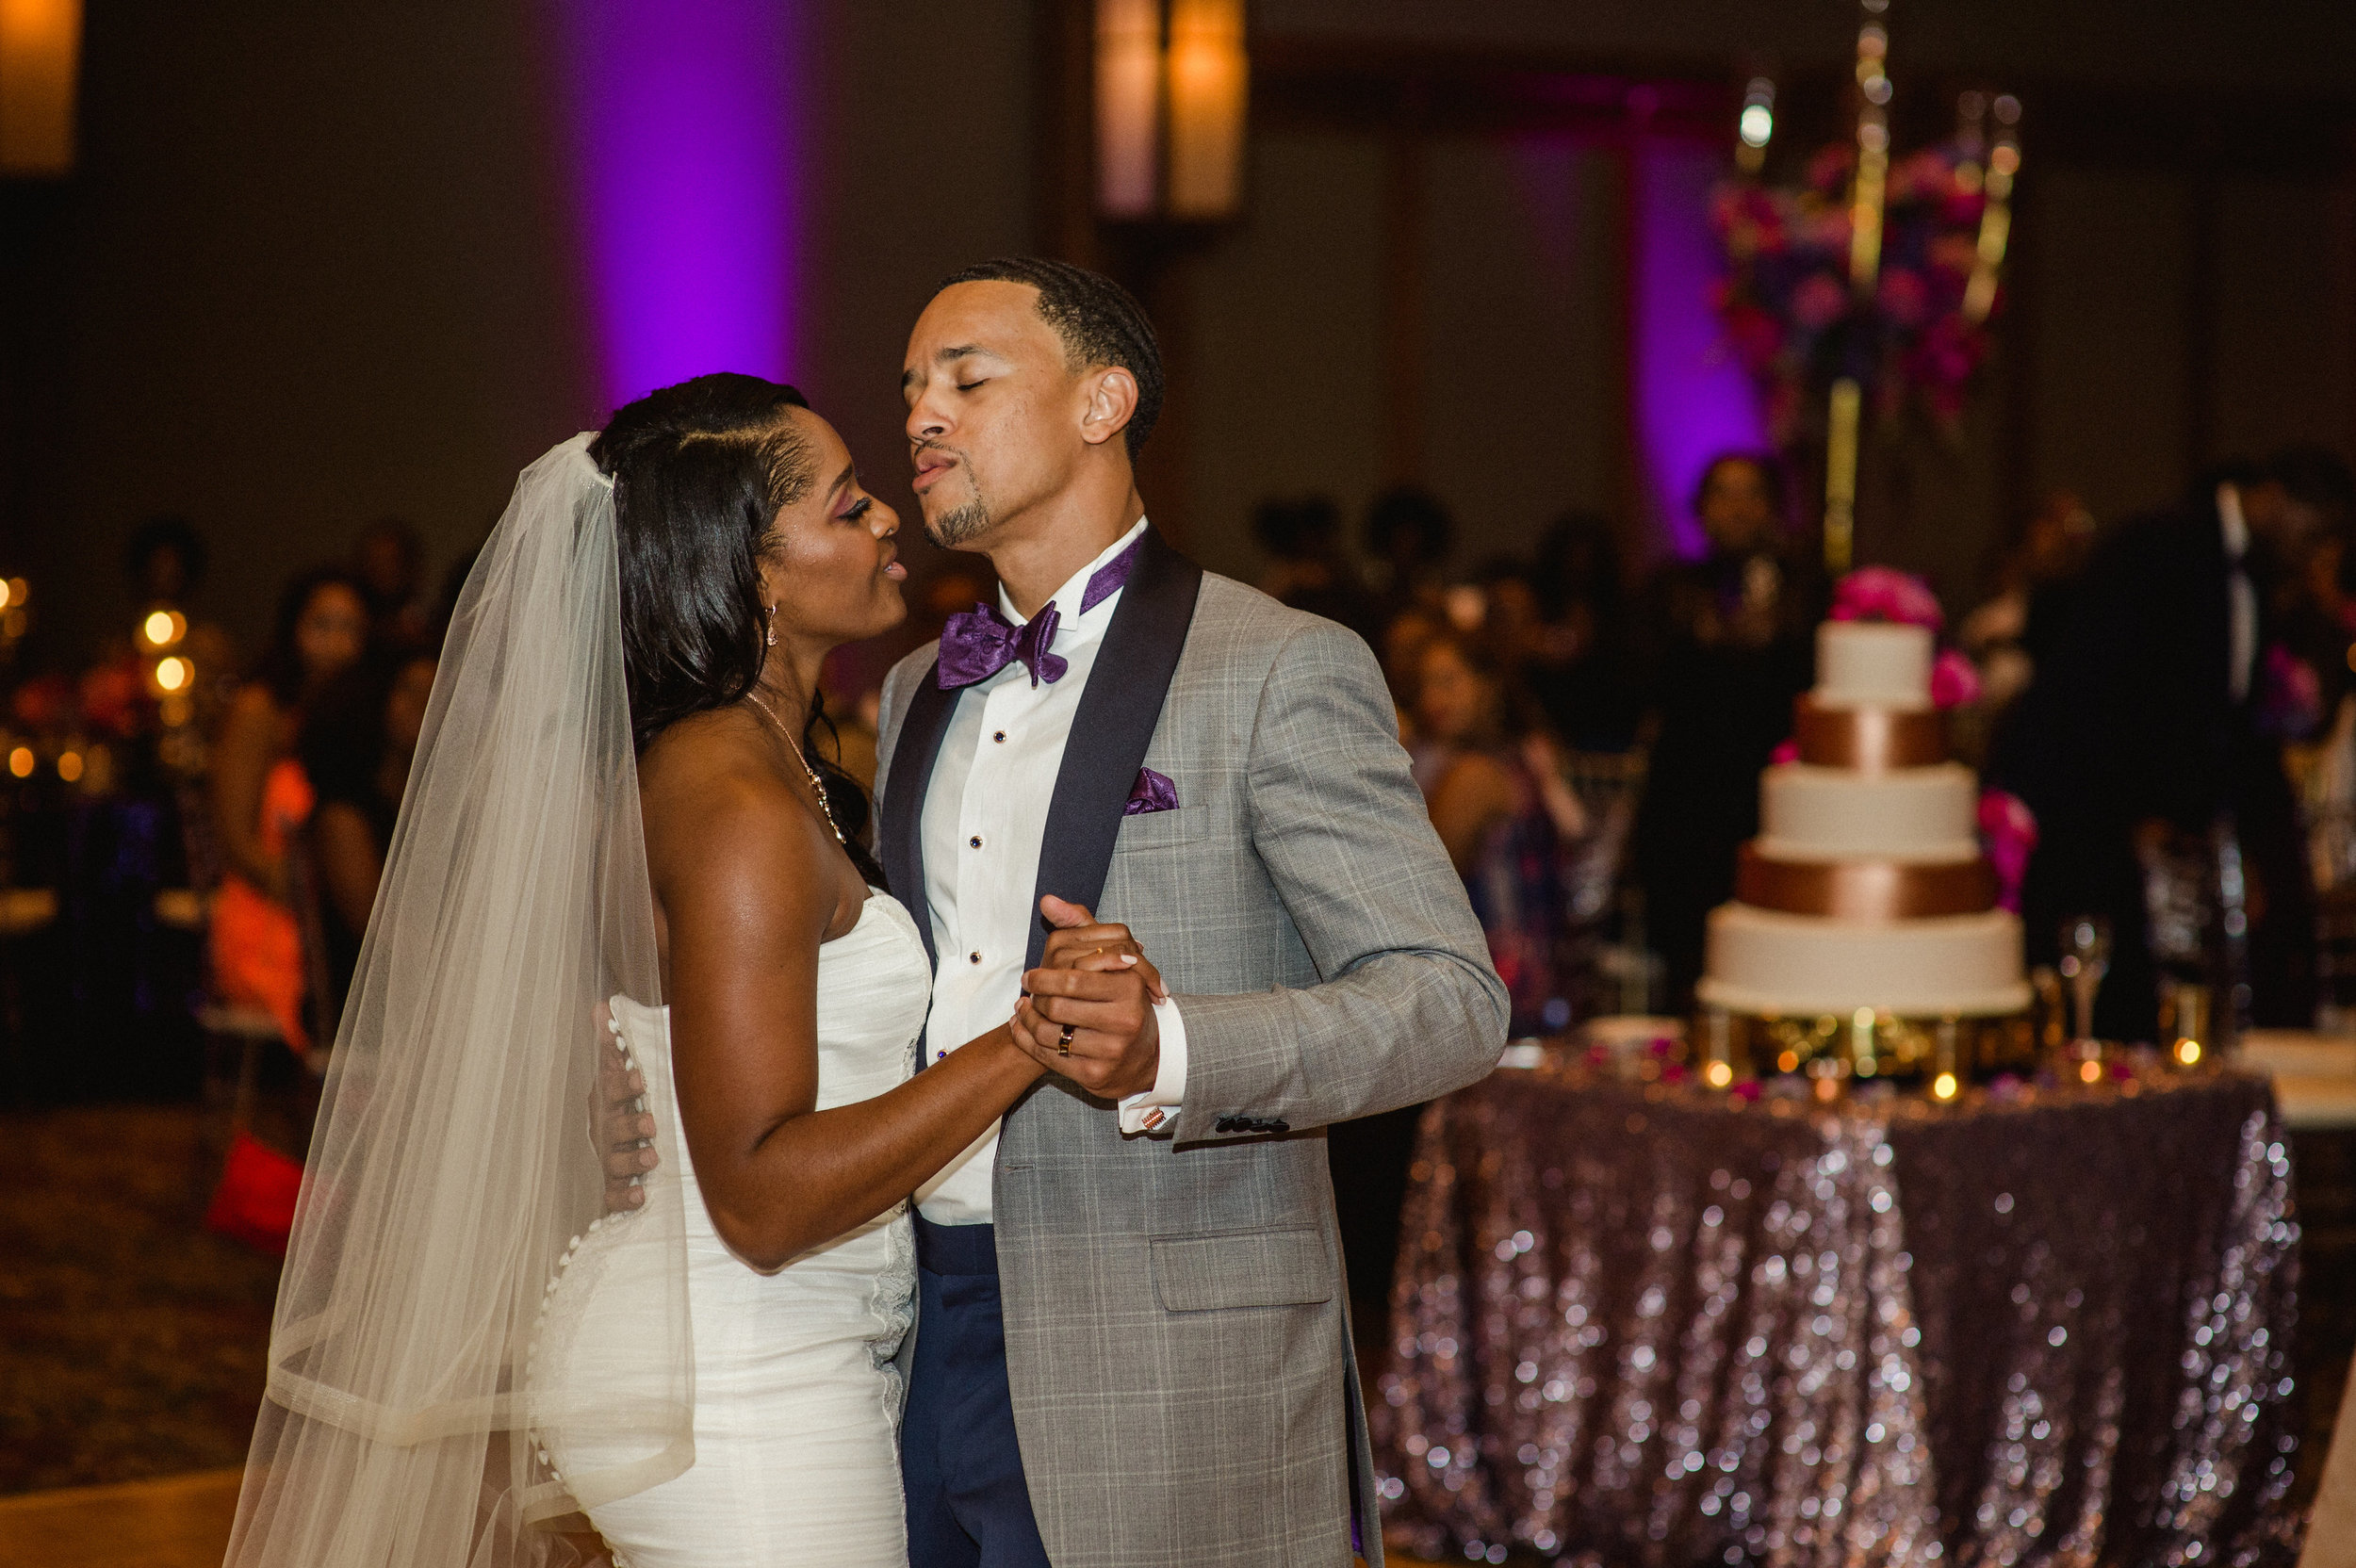 imani&chris|wedding|reception-102.jpg